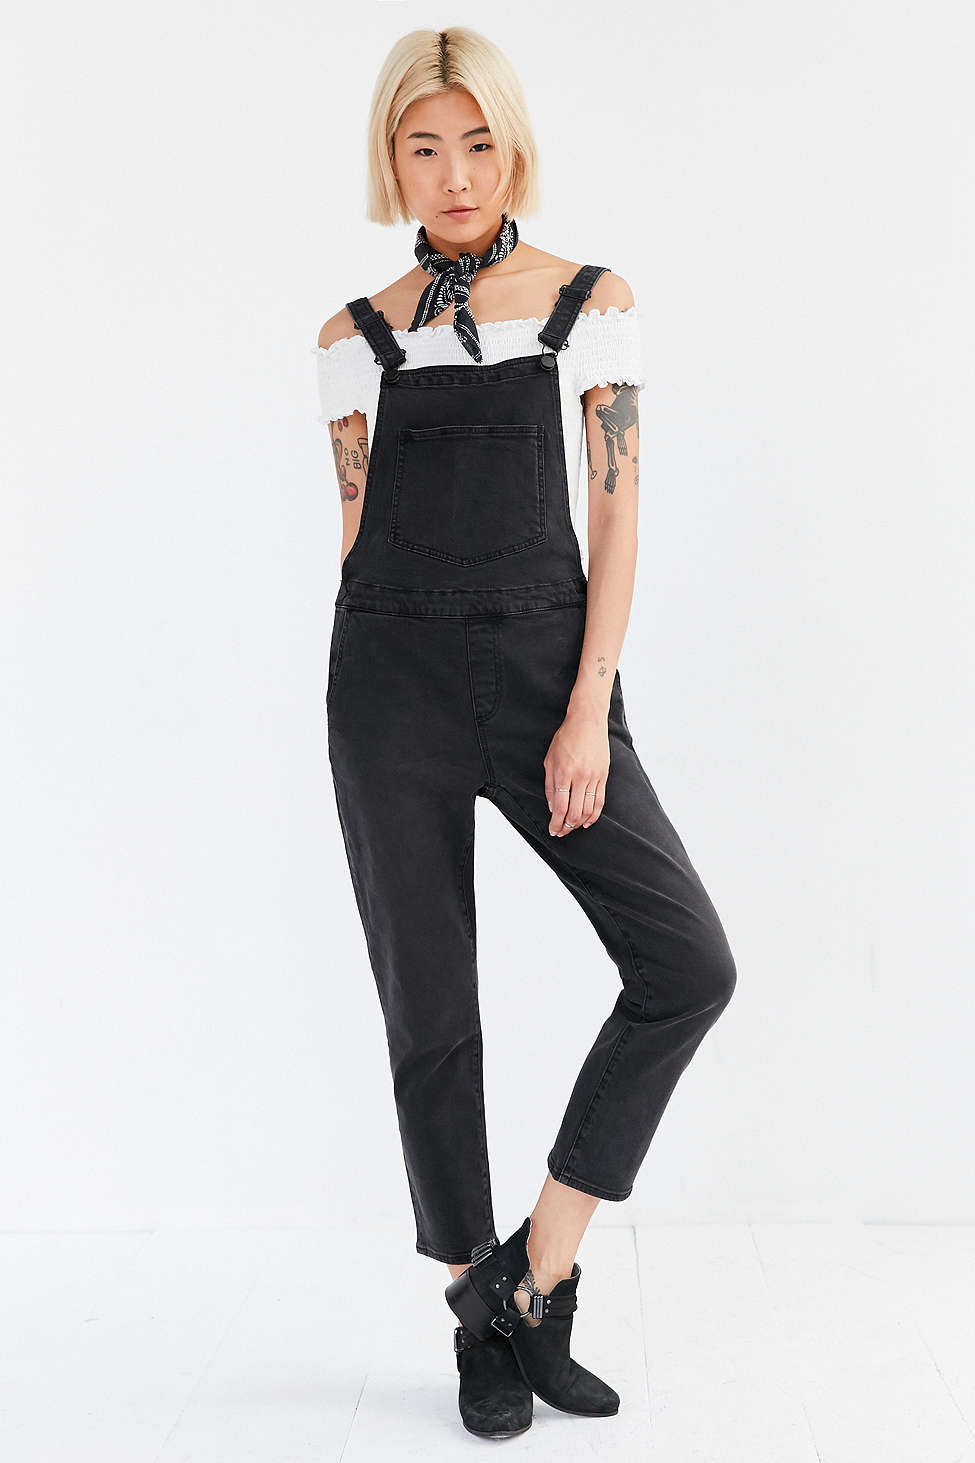 black-jumpsuit-white-top-blonde-black-shoe-booties-spring-summer-wear-fashion-style-overalls-offshoulder-black-scarf-neck-bandan-urbanoutfitters-lunch.jpg